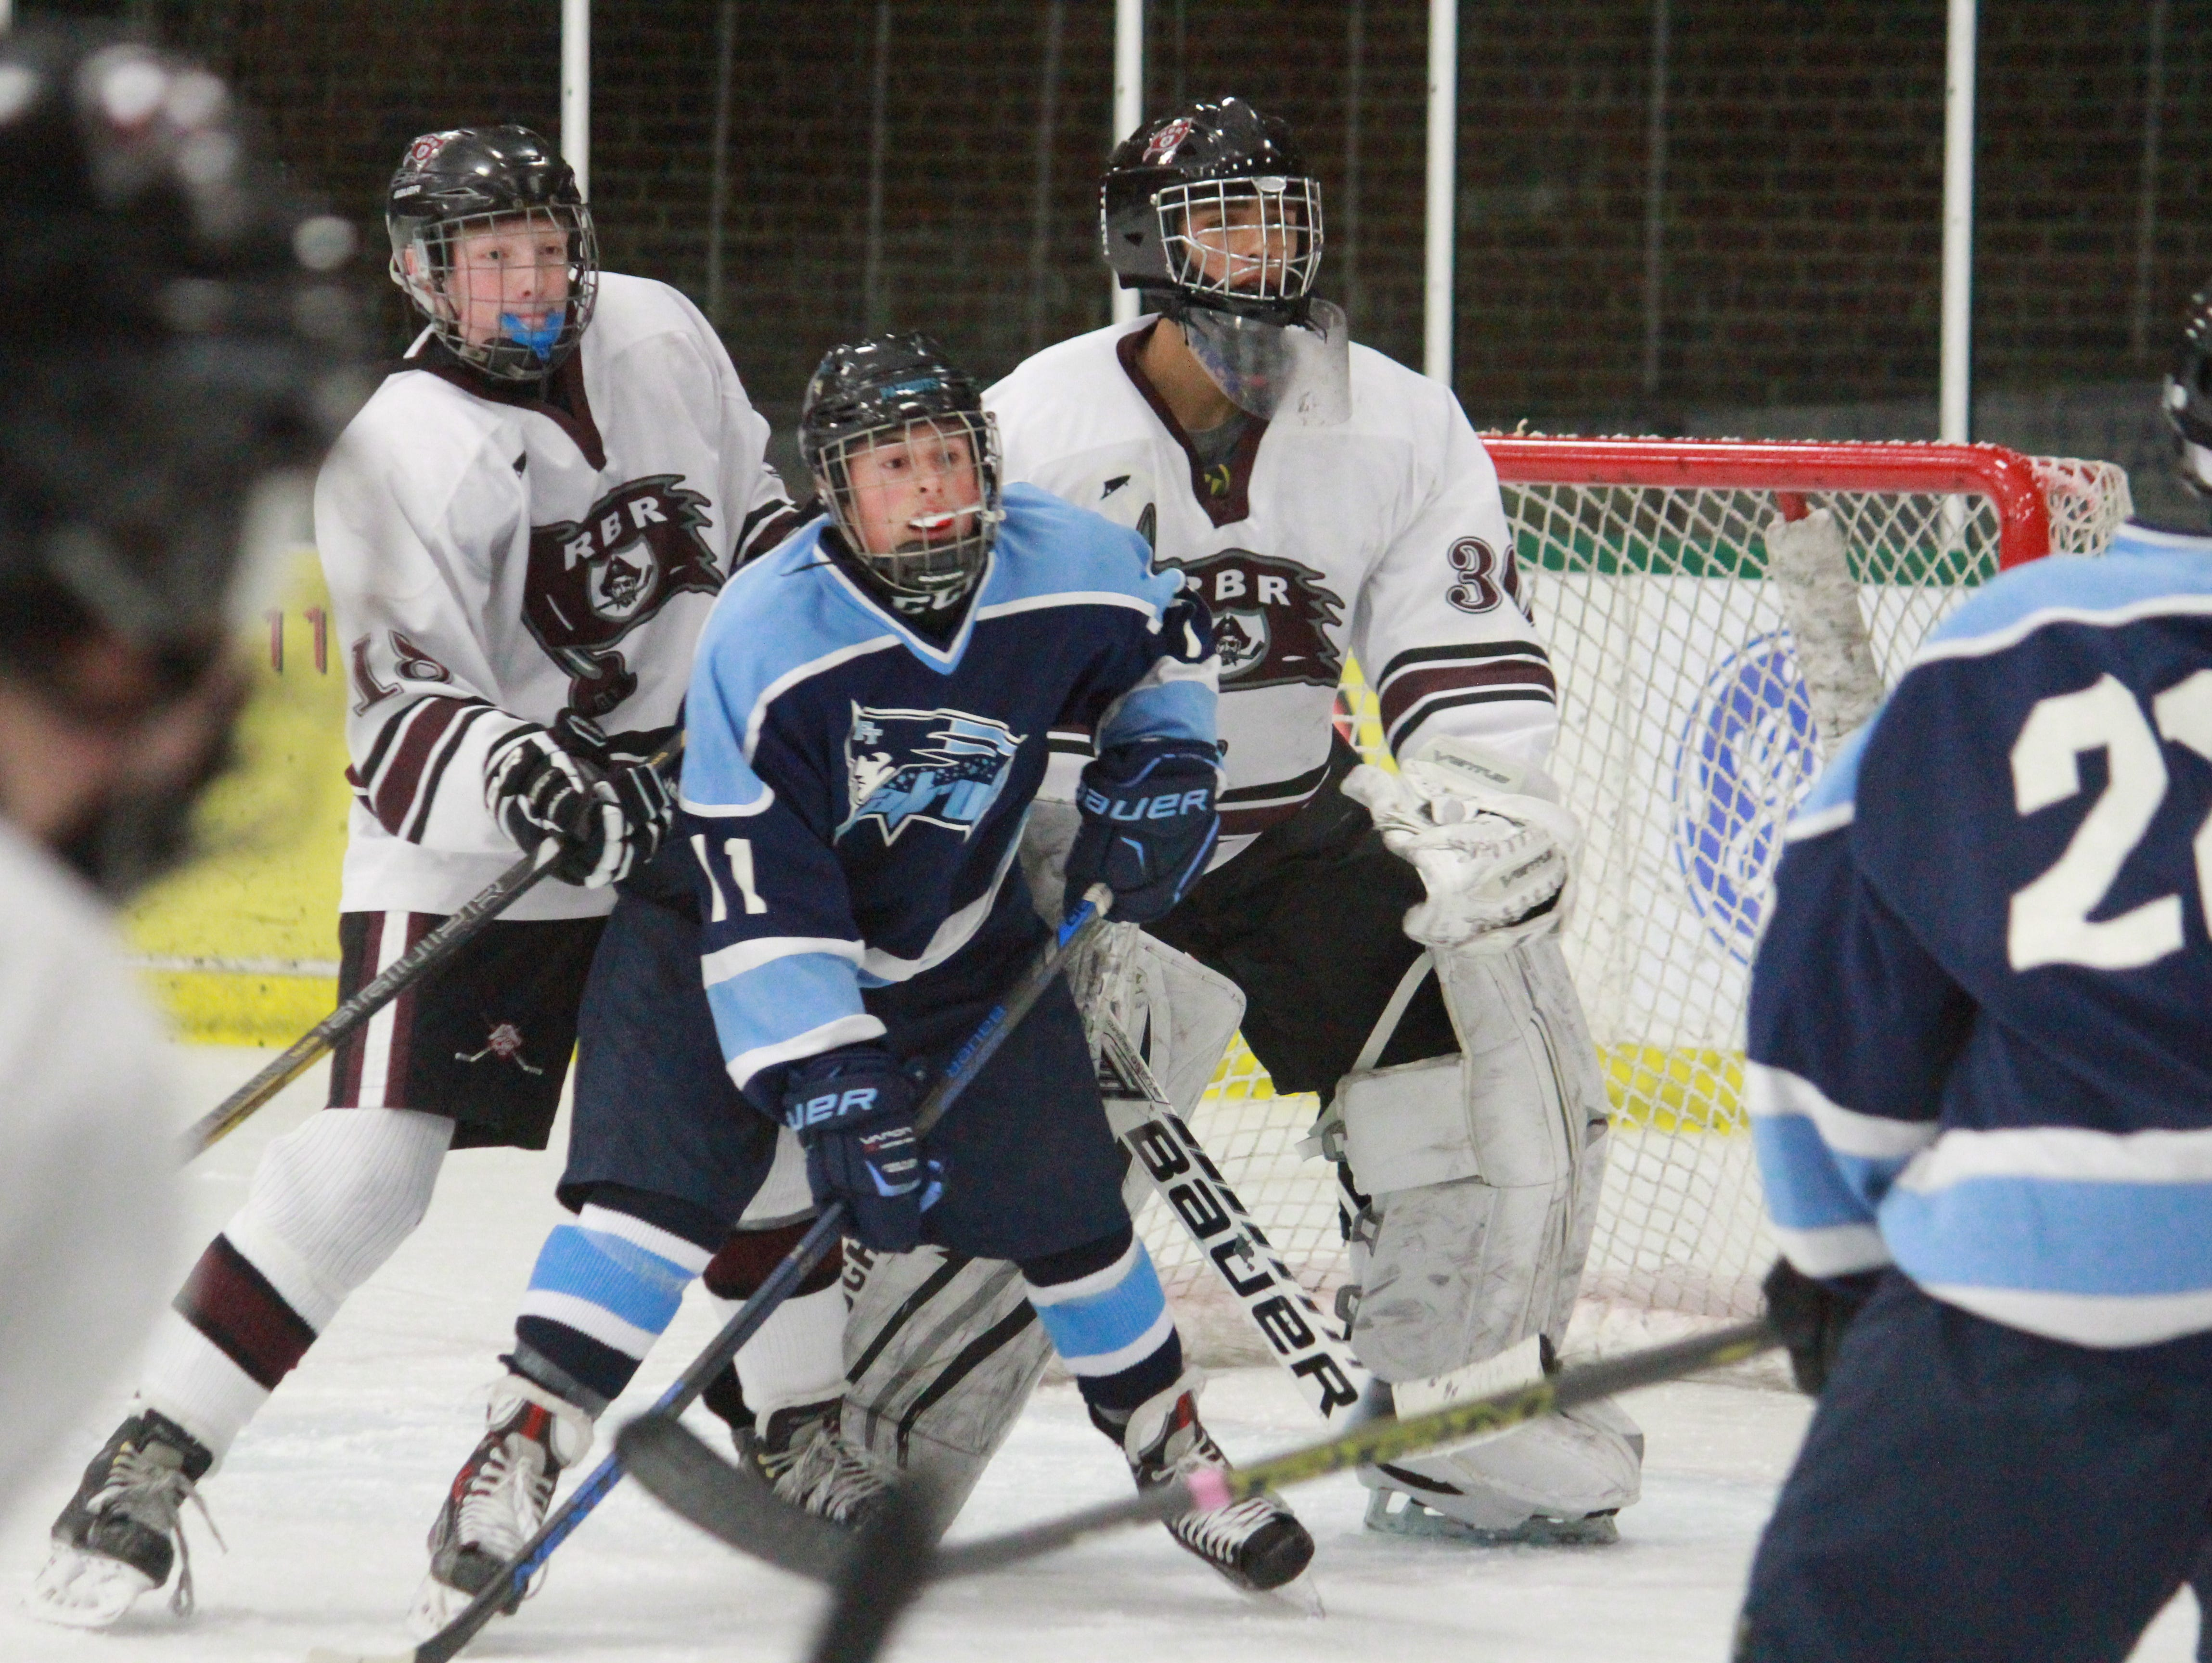 Brendan Liebross (11) battles in front of the net for Freehold Township.